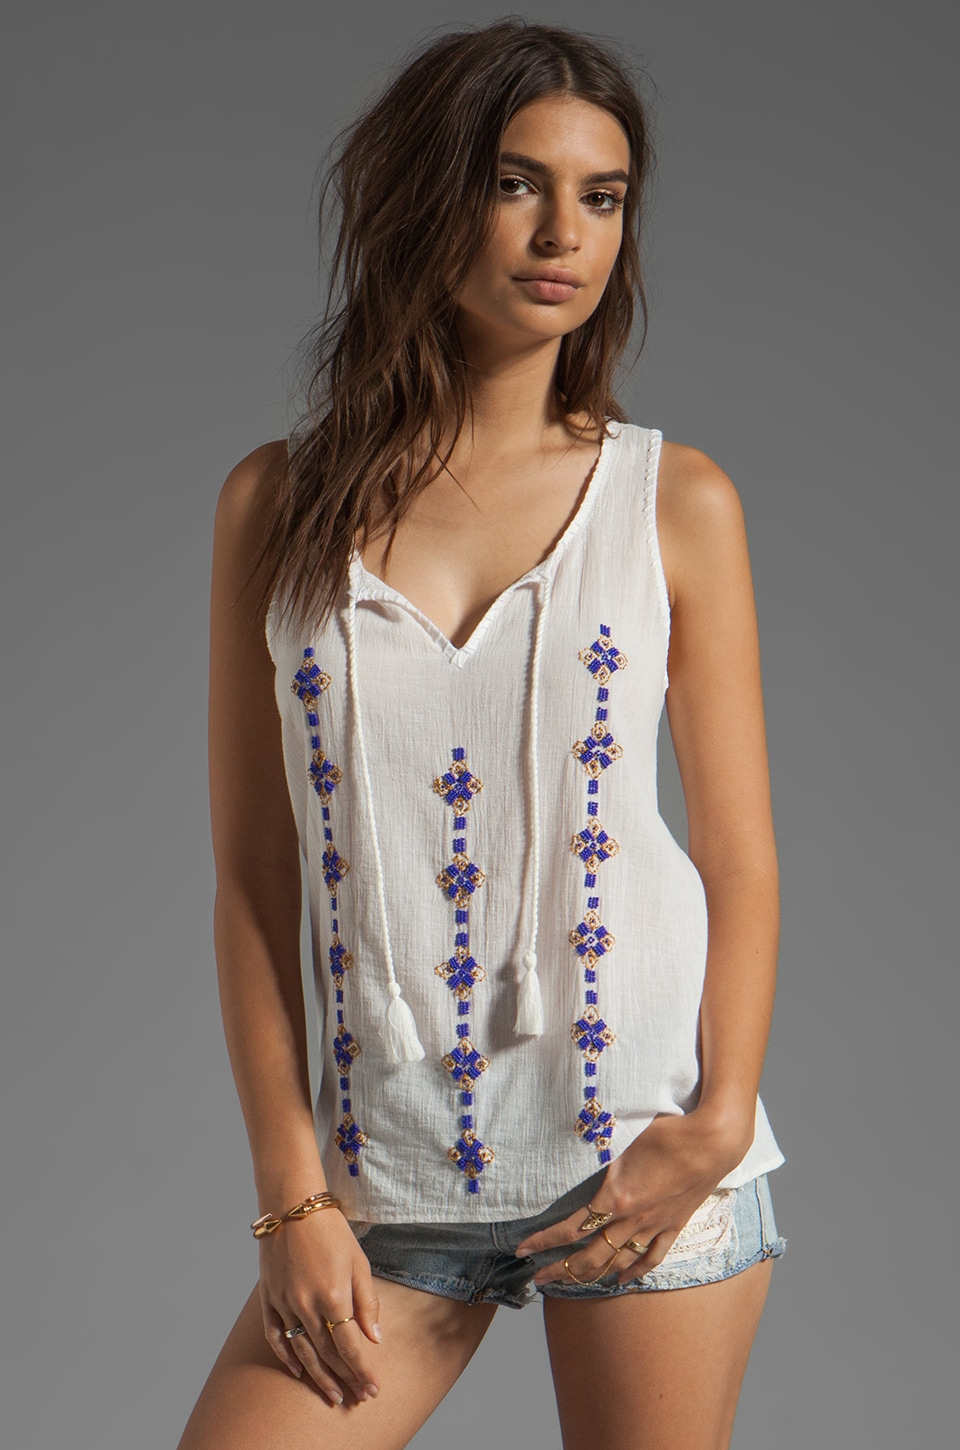 Joie Kuna B Embroidery and Beaded Tank in Porcelain